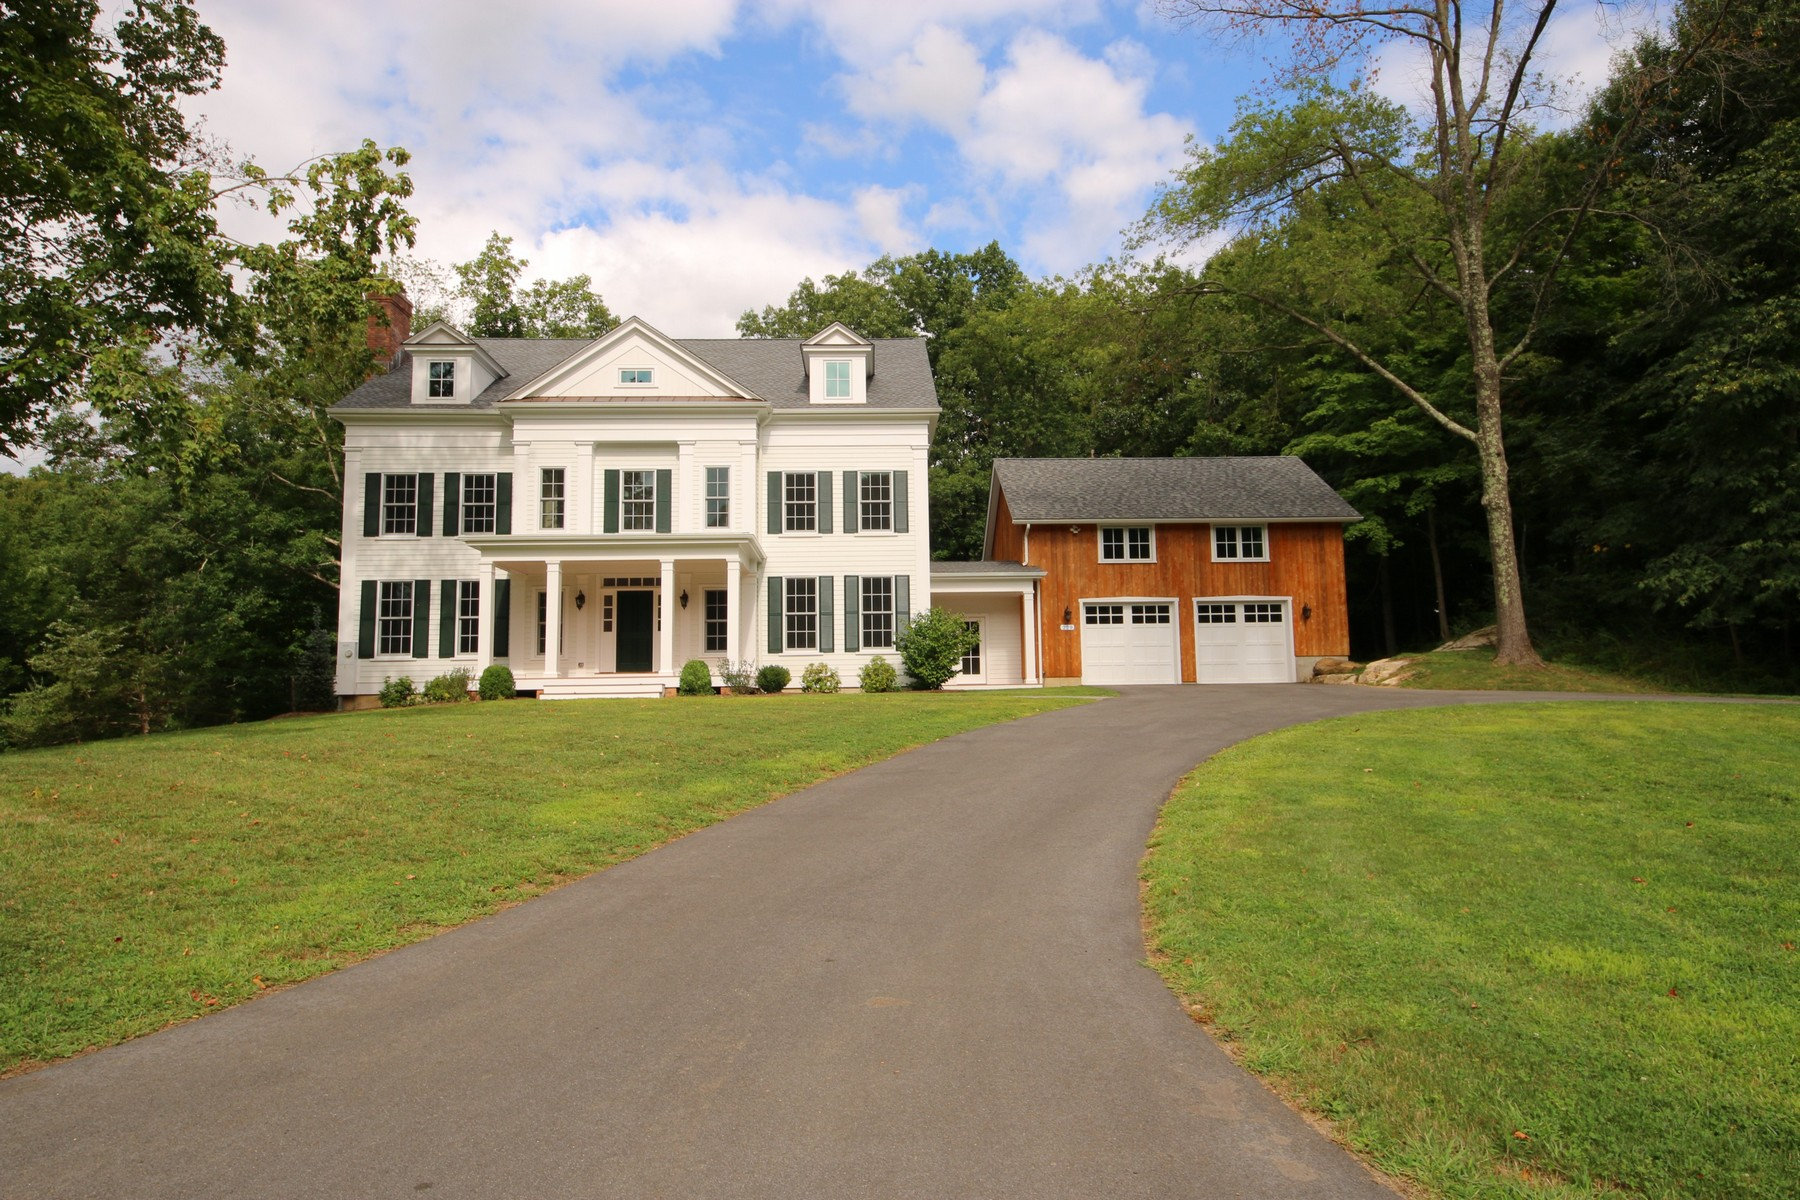 Casa Unifamiliar por un Venta en Bennetts Meadow New Subdivision 229 Bennetts Farm Road Ridgefield, Connecticut, 06877 Estados Unidos